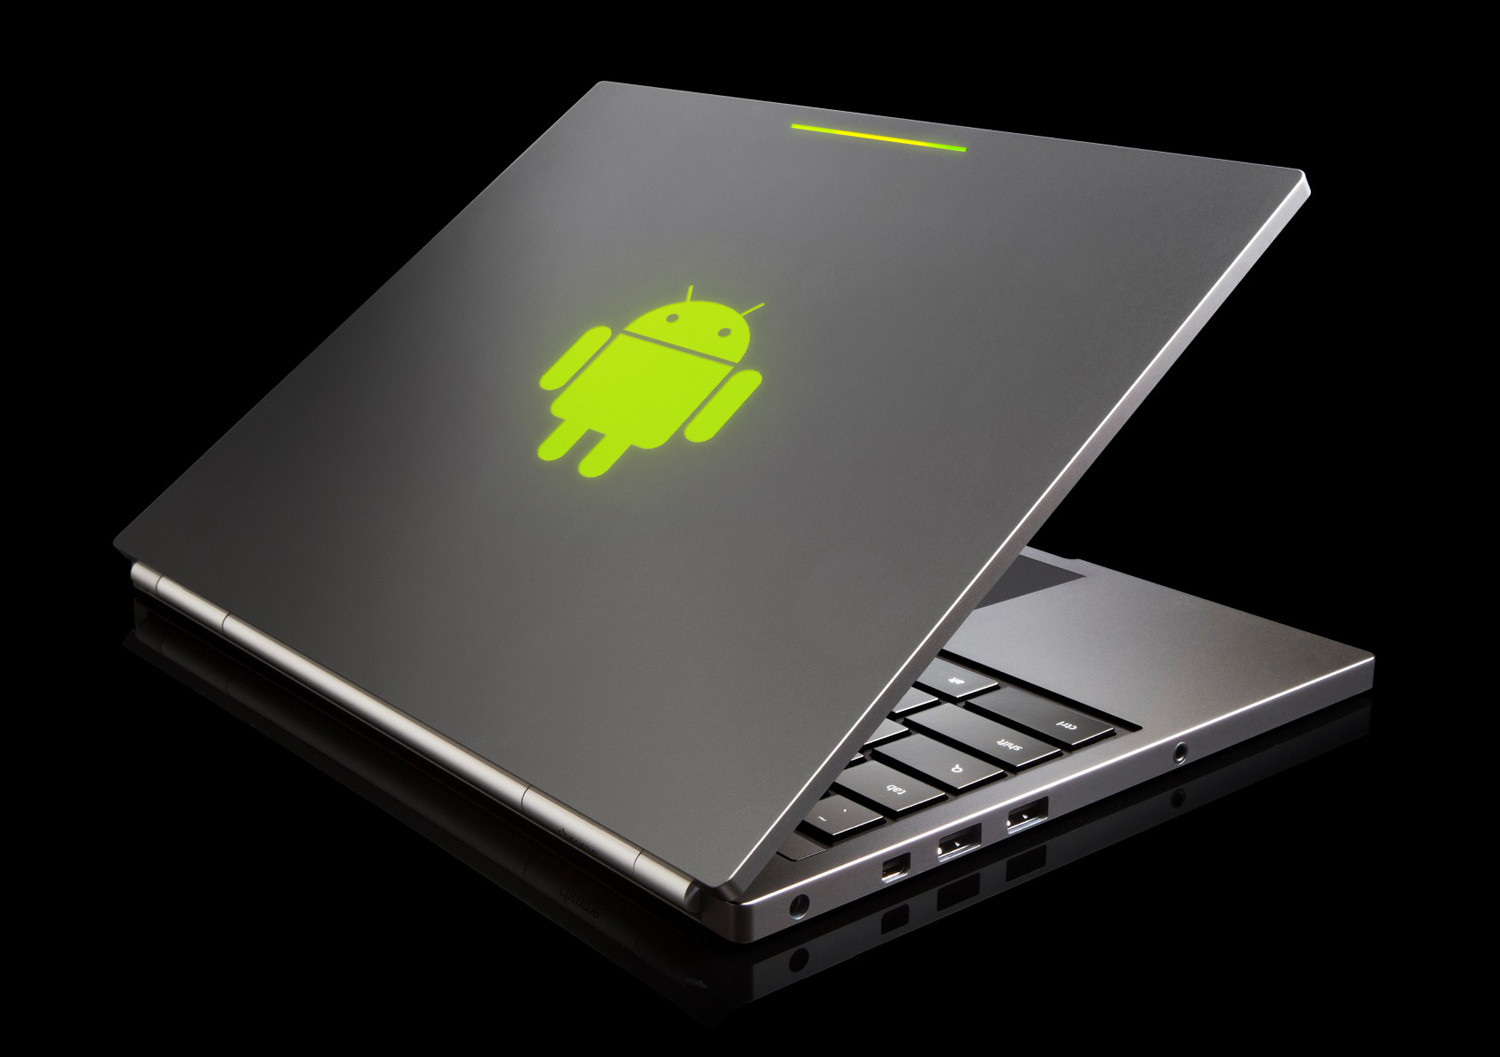 How to Install Android KitKat on Windows PC, Laptops as Dual